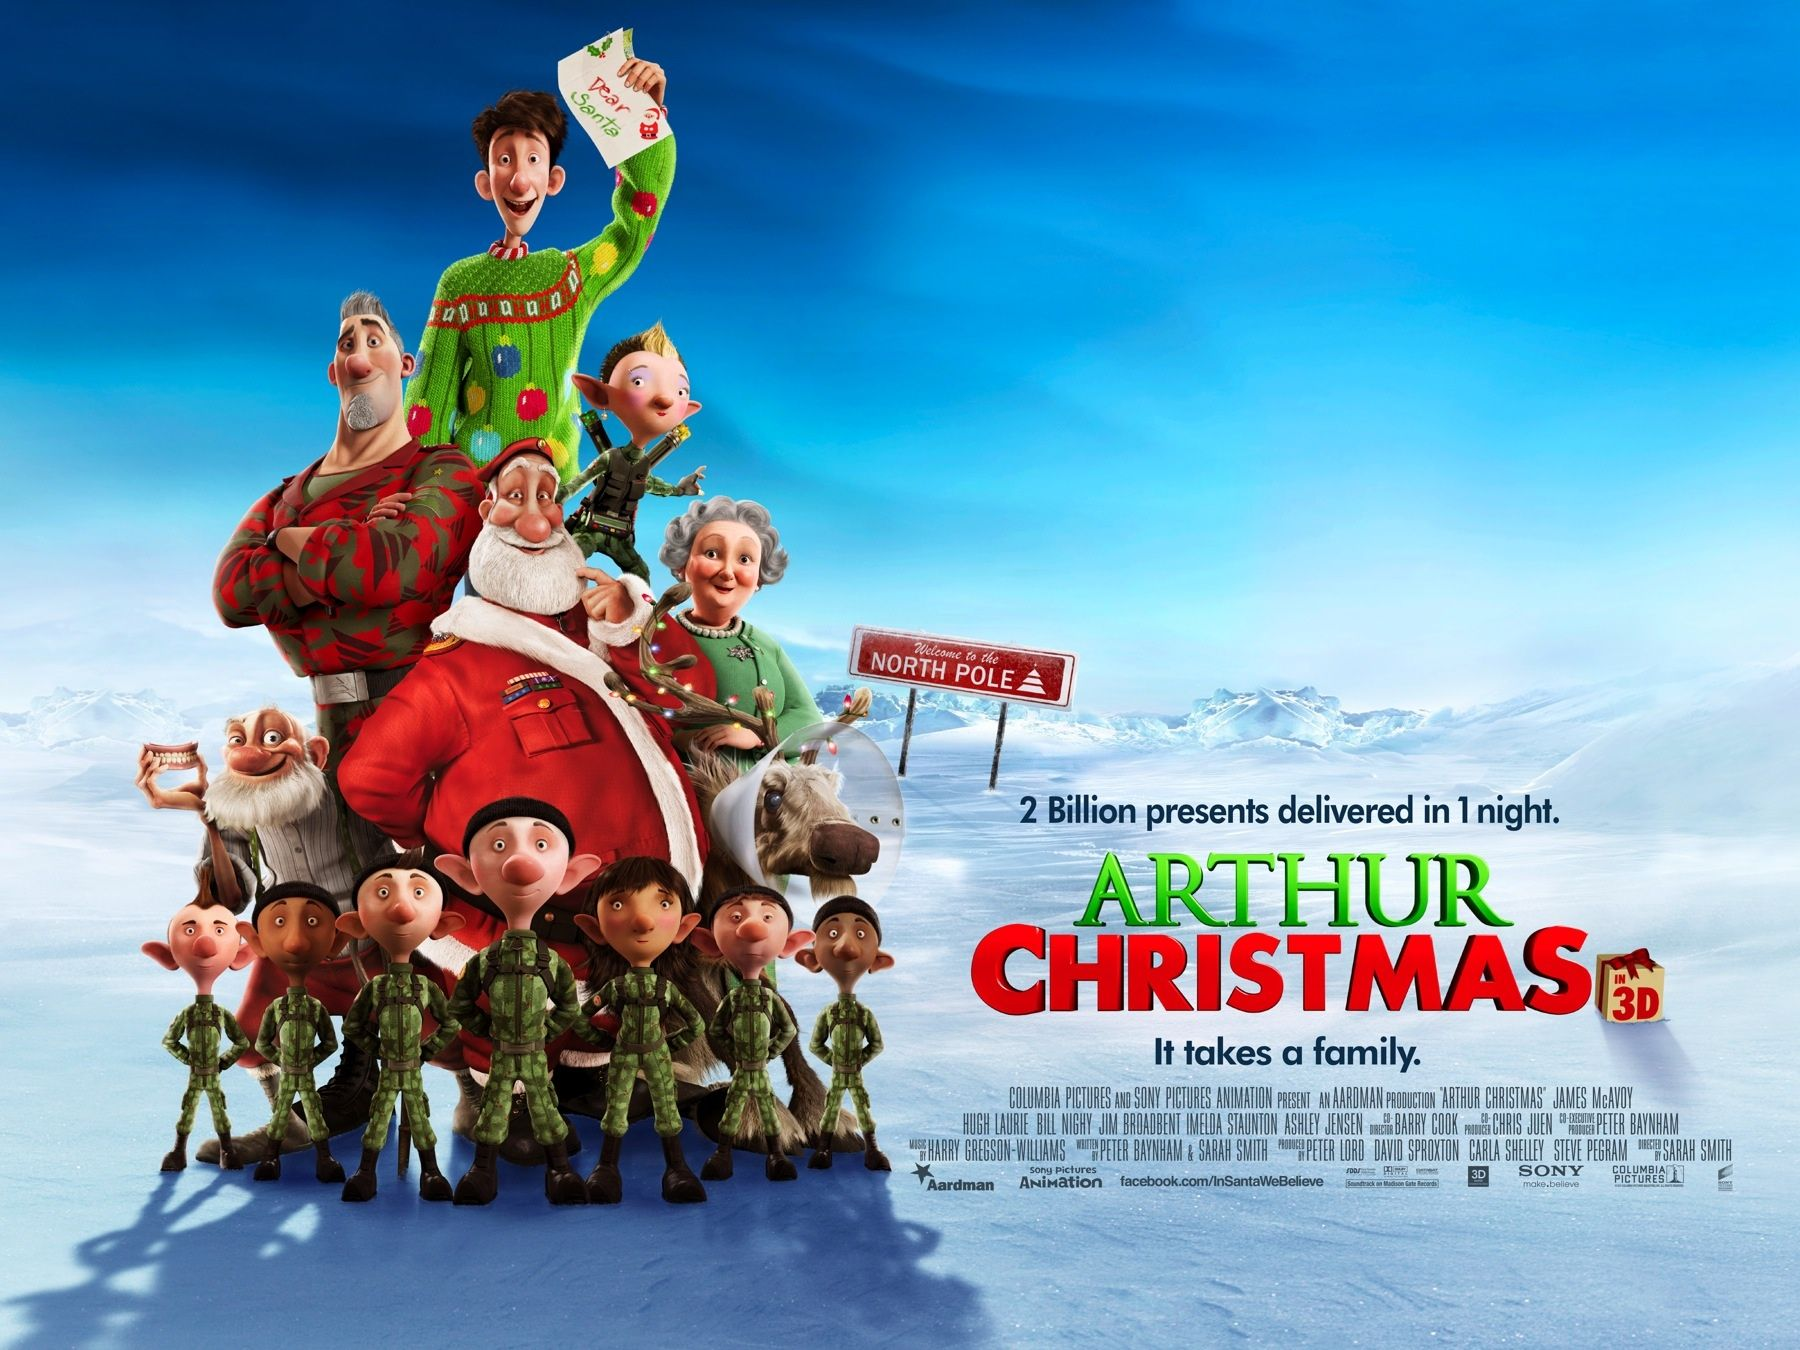 Arthurs Christmas Review - new Christmas classic, big thumbs up from www.theatrebooksandmovies.com